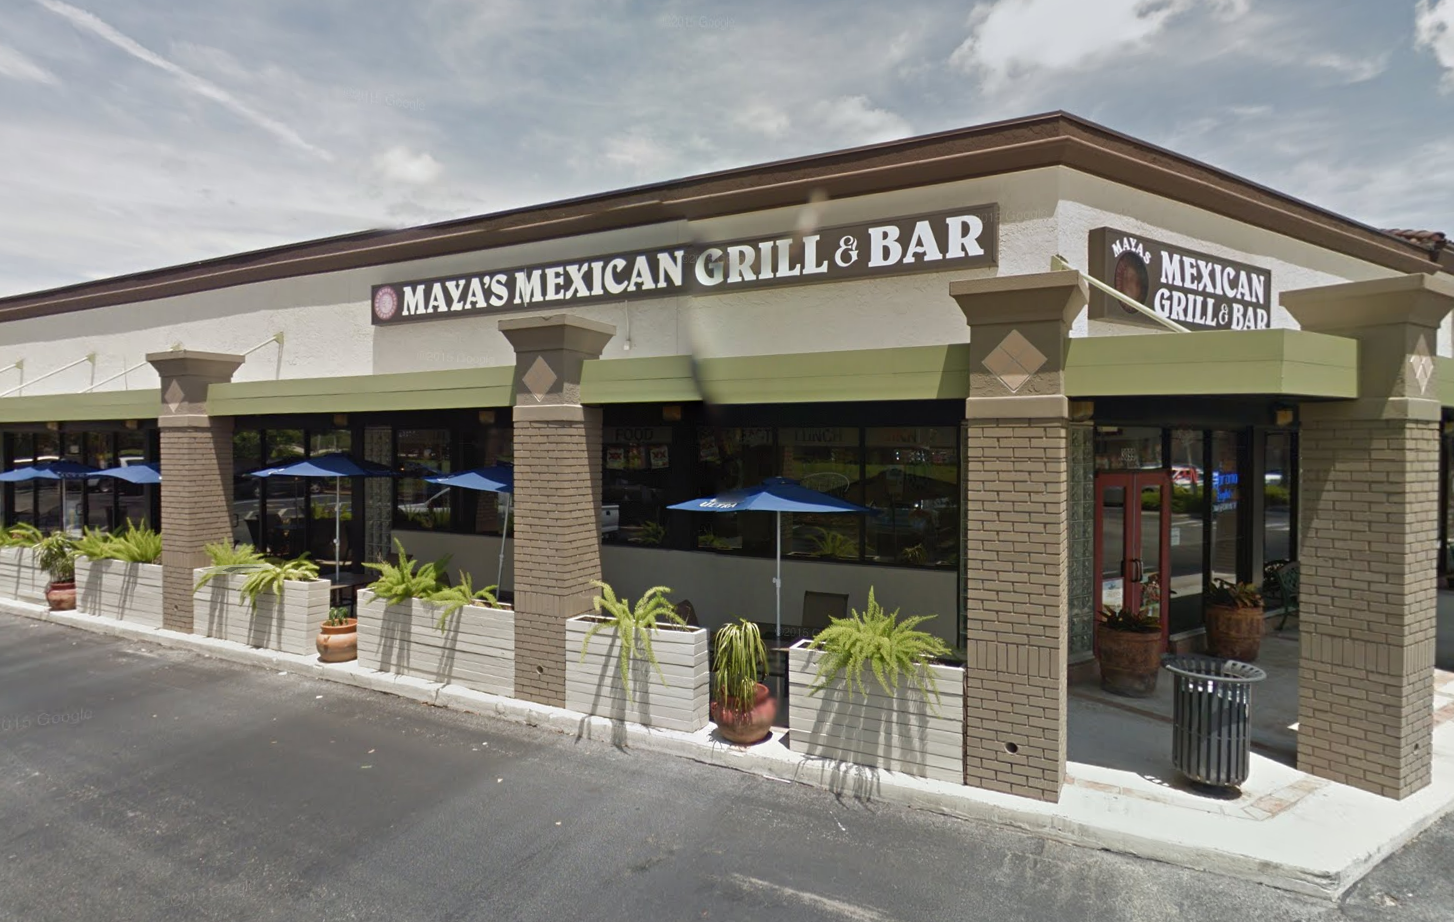 Maya's Mexican Grill & Bar - Mayas Grill is a great Mexican restaurant where you will find authentic taste of home on every dish and a full liquor bar with excellent home made Margaritas.